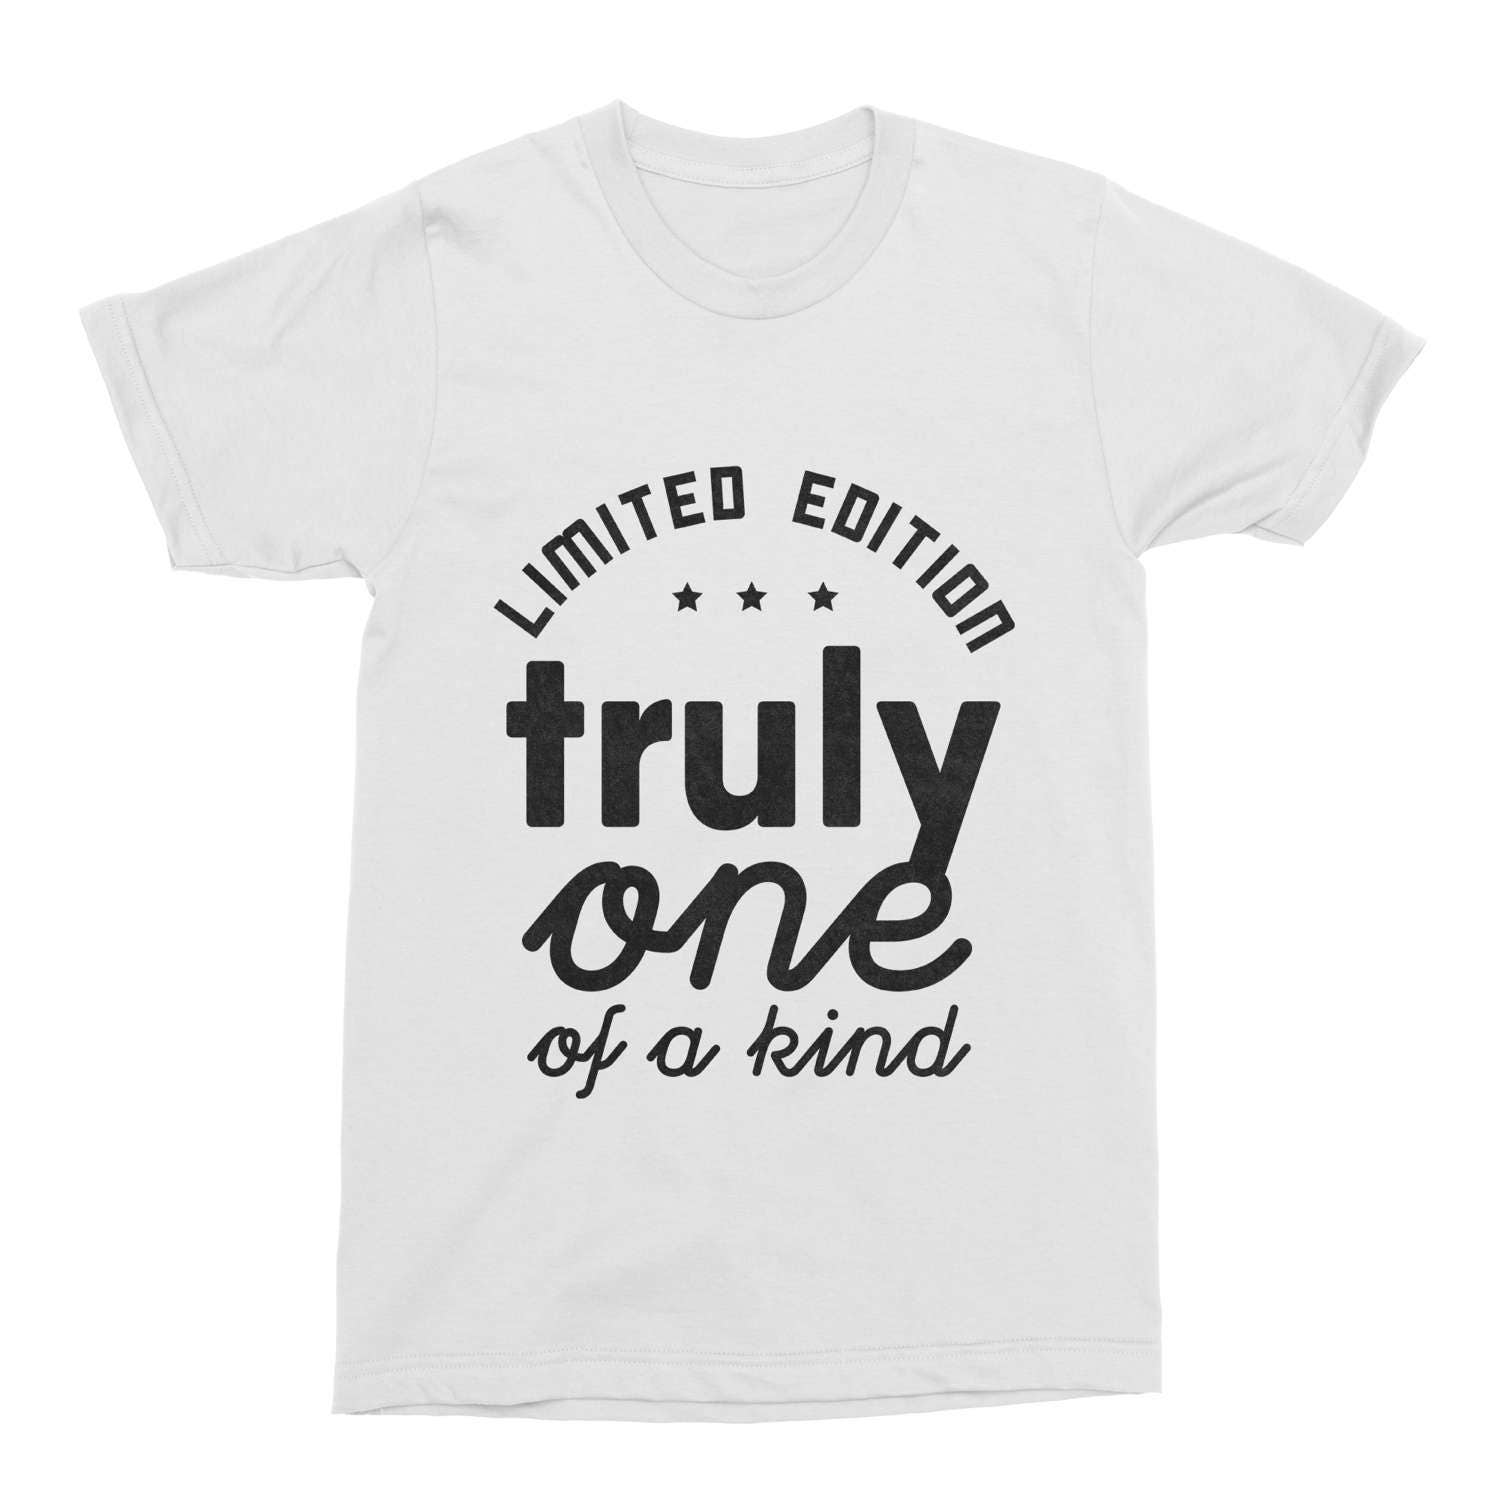 Limited Edition TShirts Limited Edition Truly One of a Kind TShirt Mens Tee Cotton Gift For Dad Uncle Printed TShirt Funny Mens TShirt